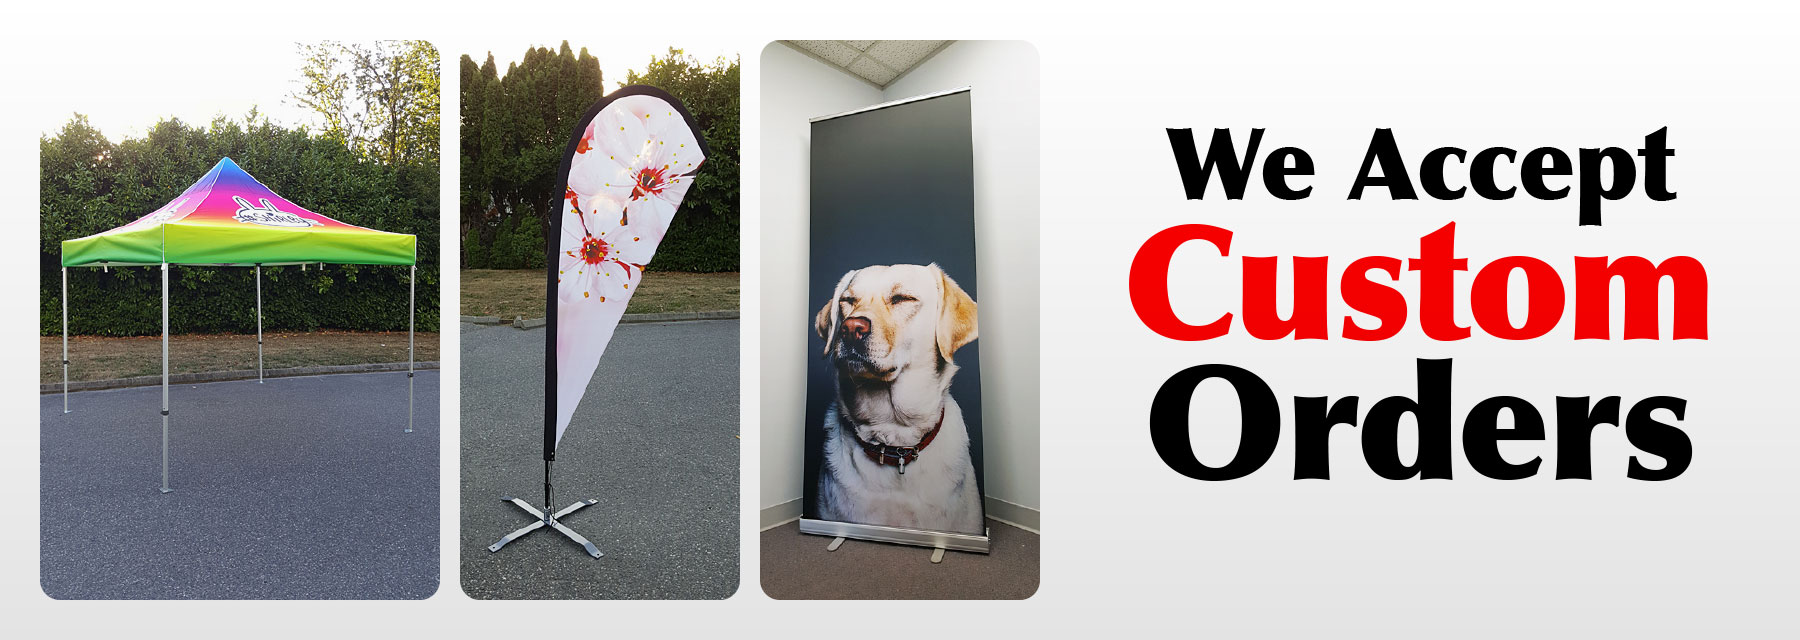 We accept custom orders for banner printing